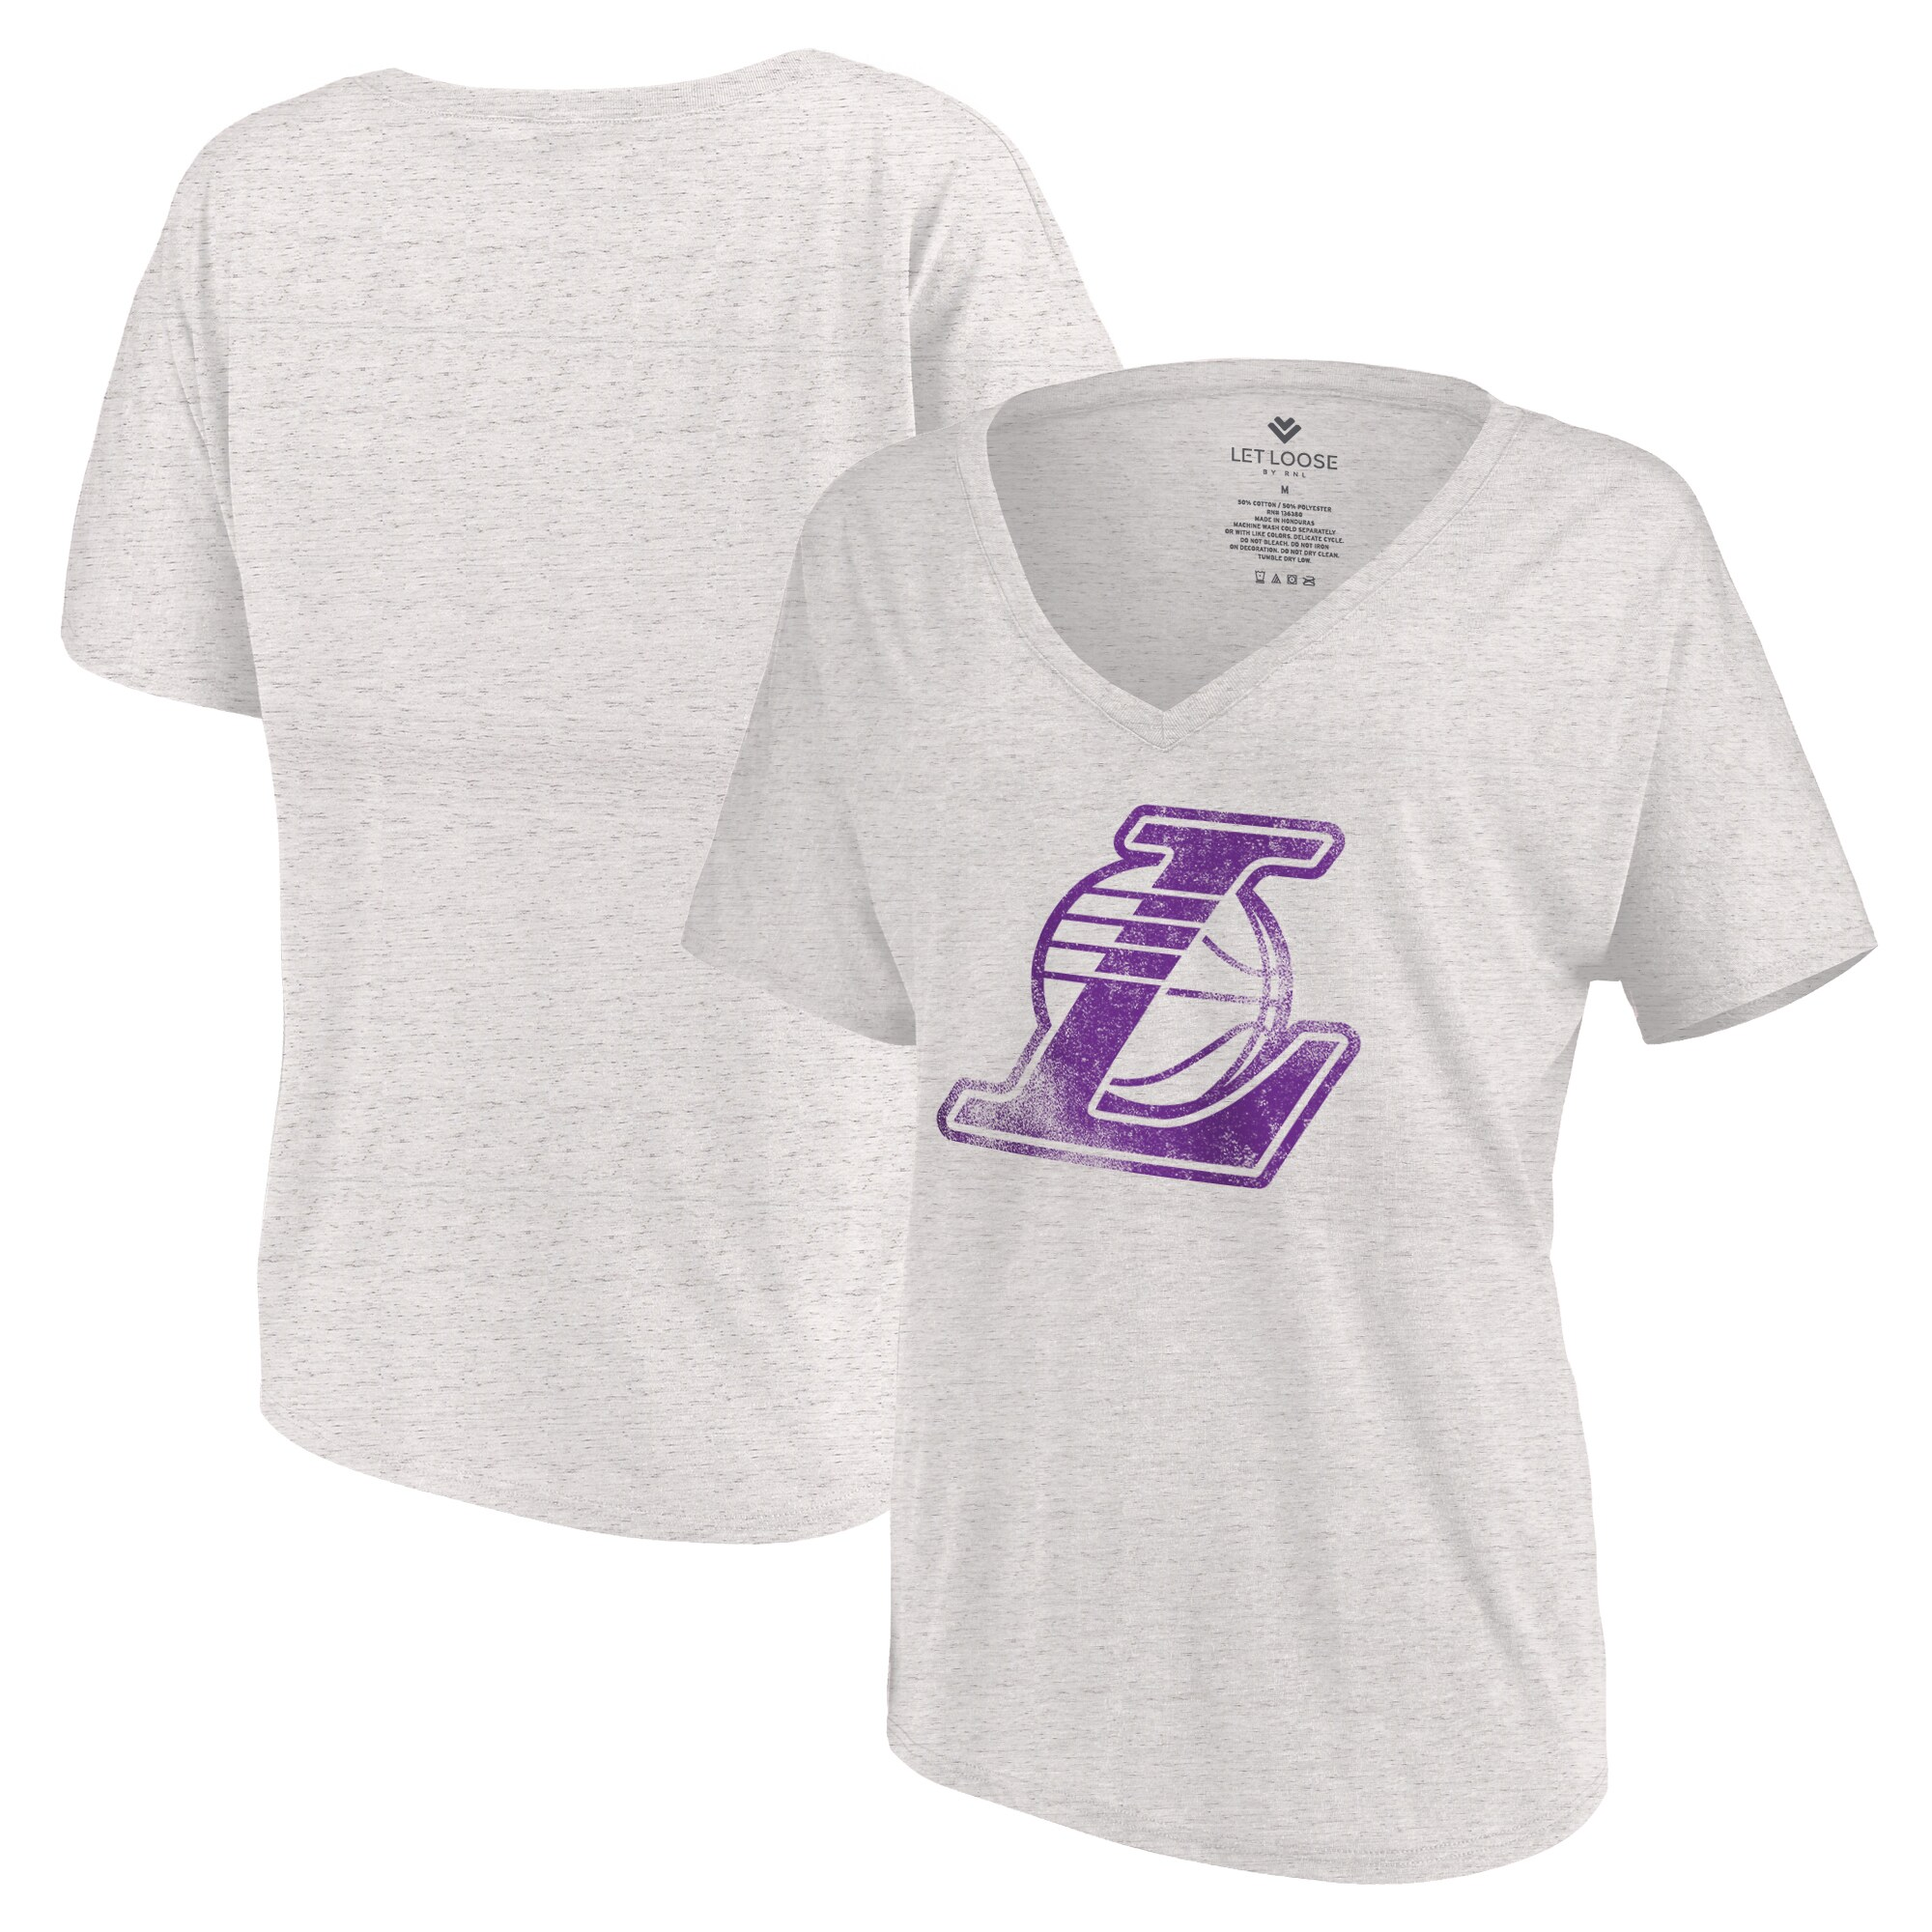 Los Angeles Lakers Let Loose by RNL Women's Distressed Primary Logo V-Neck T-Shirt - White Marble